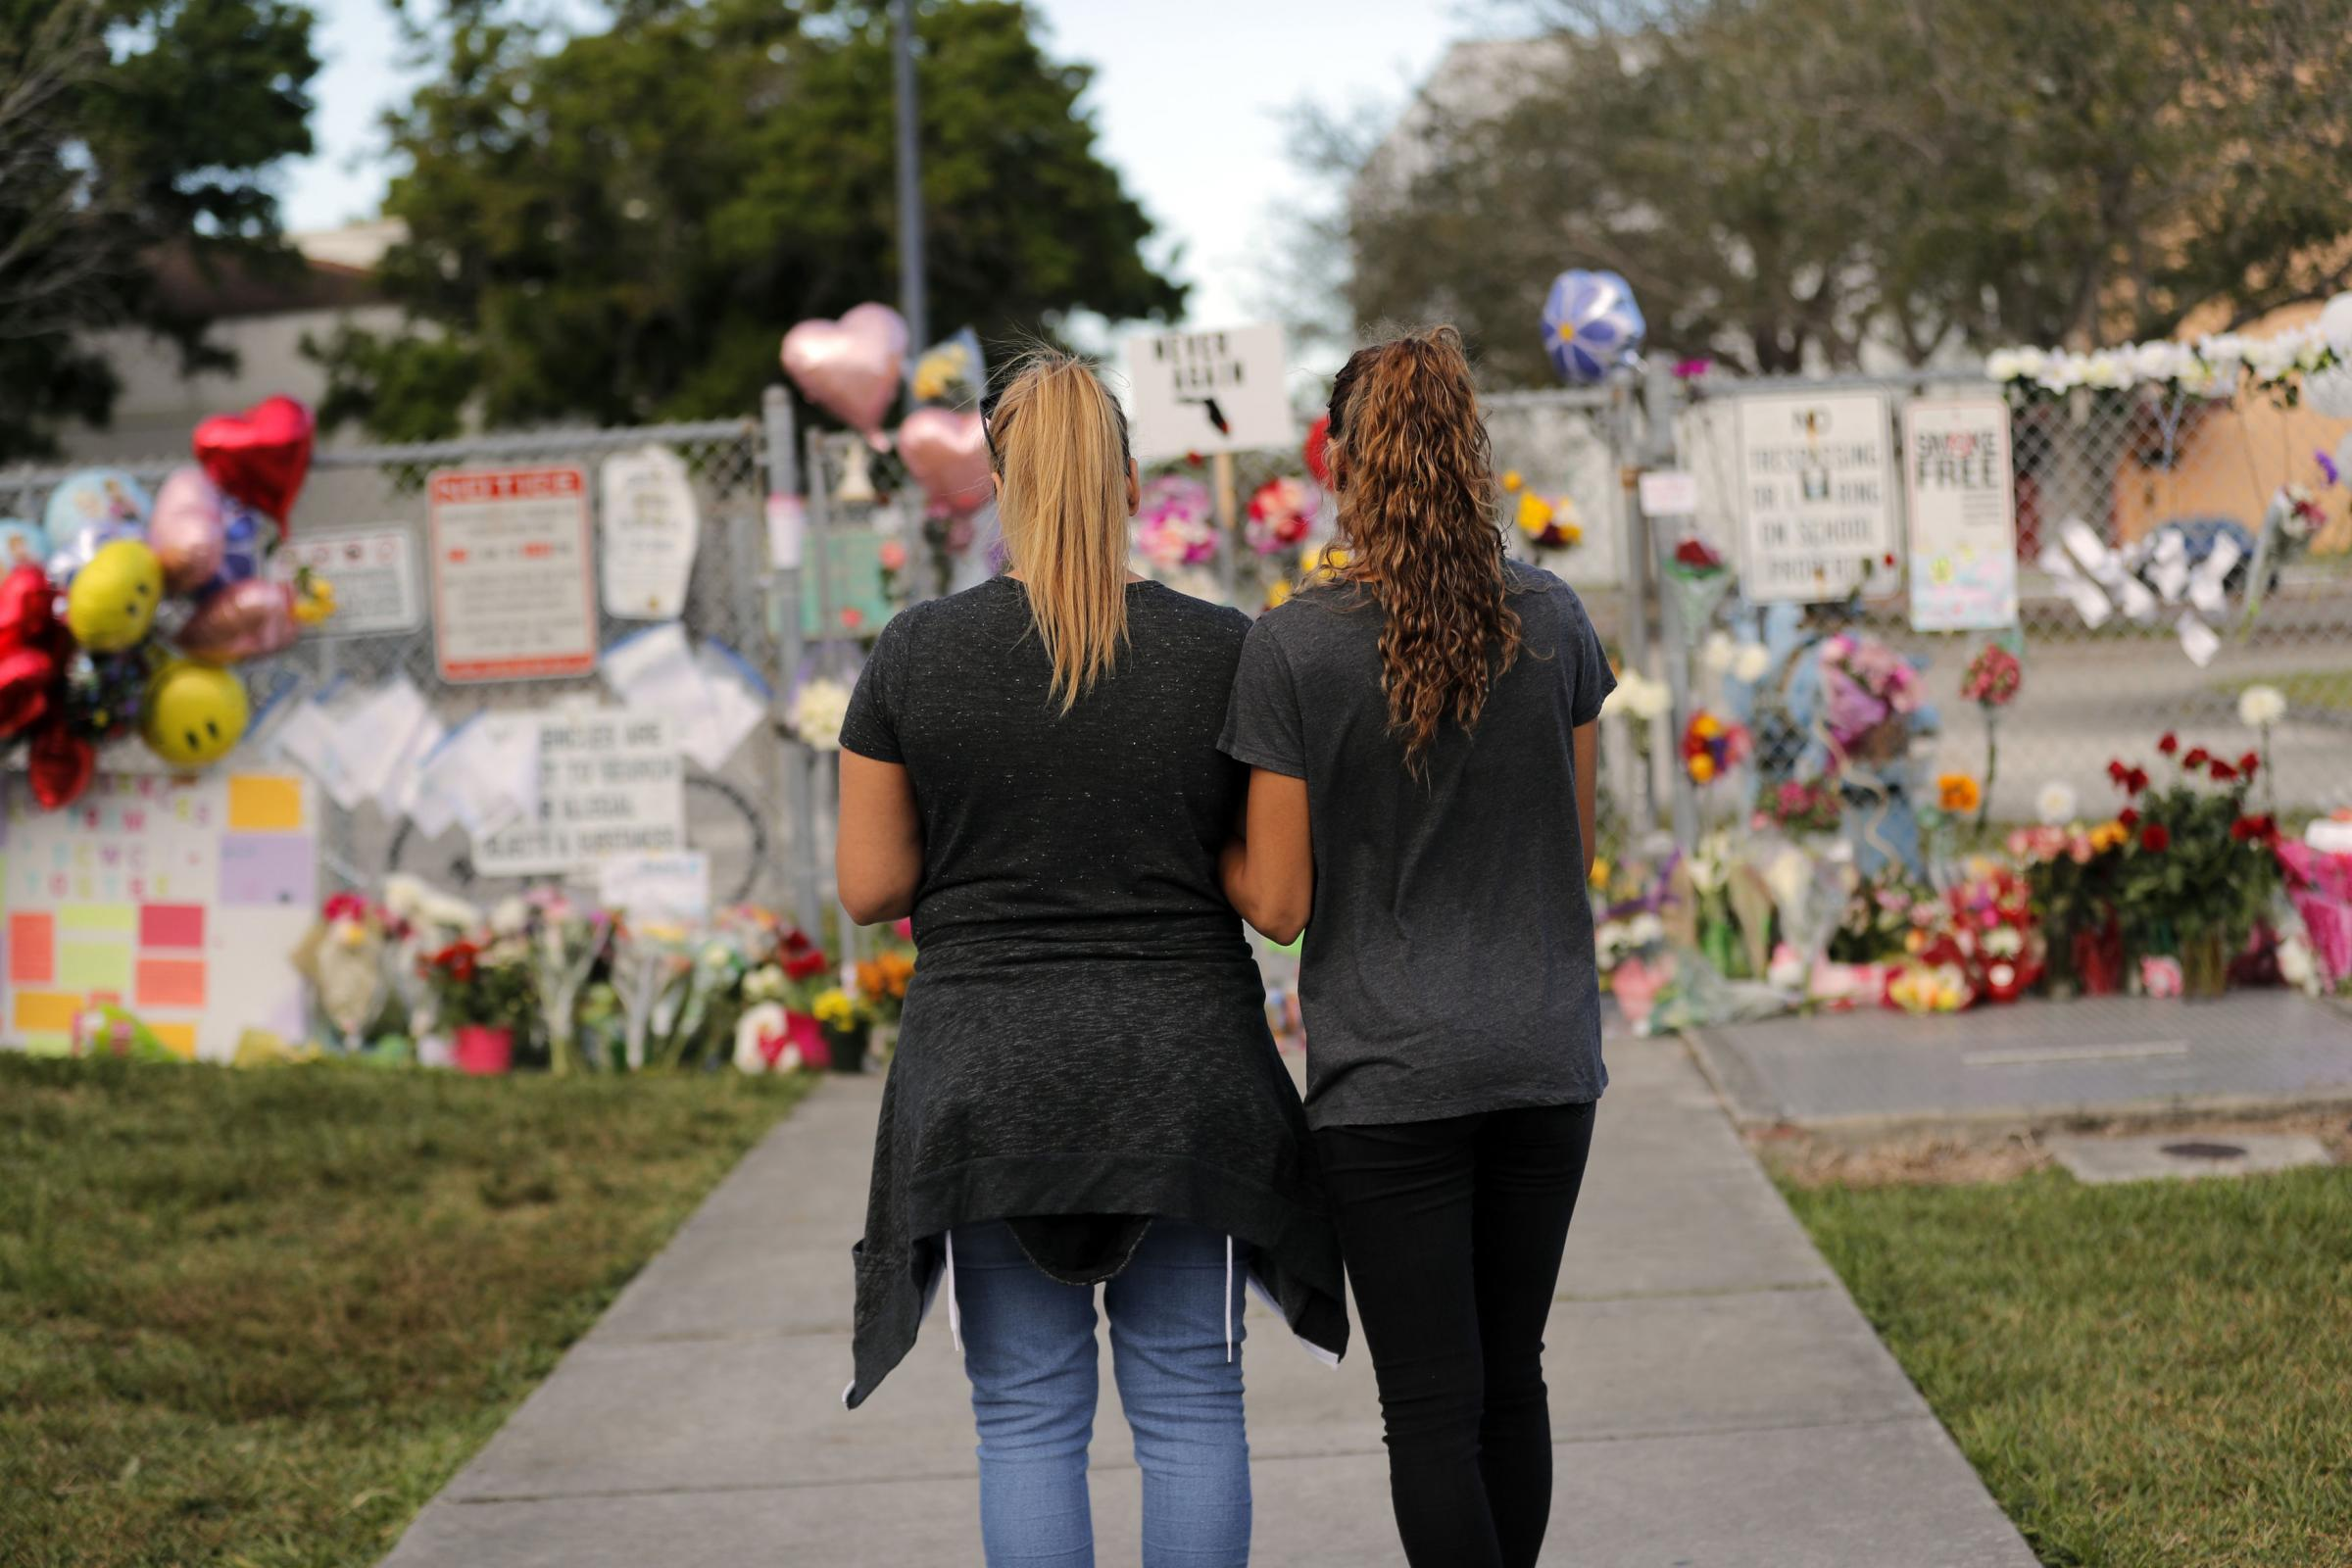 Sara Smith, left, and her daughter Karina Smith visit a makeshift memorial outside the Marjory Stoneman Douglas High School, where 17 students and faculty were killed in a mass shooting. Picture: AP